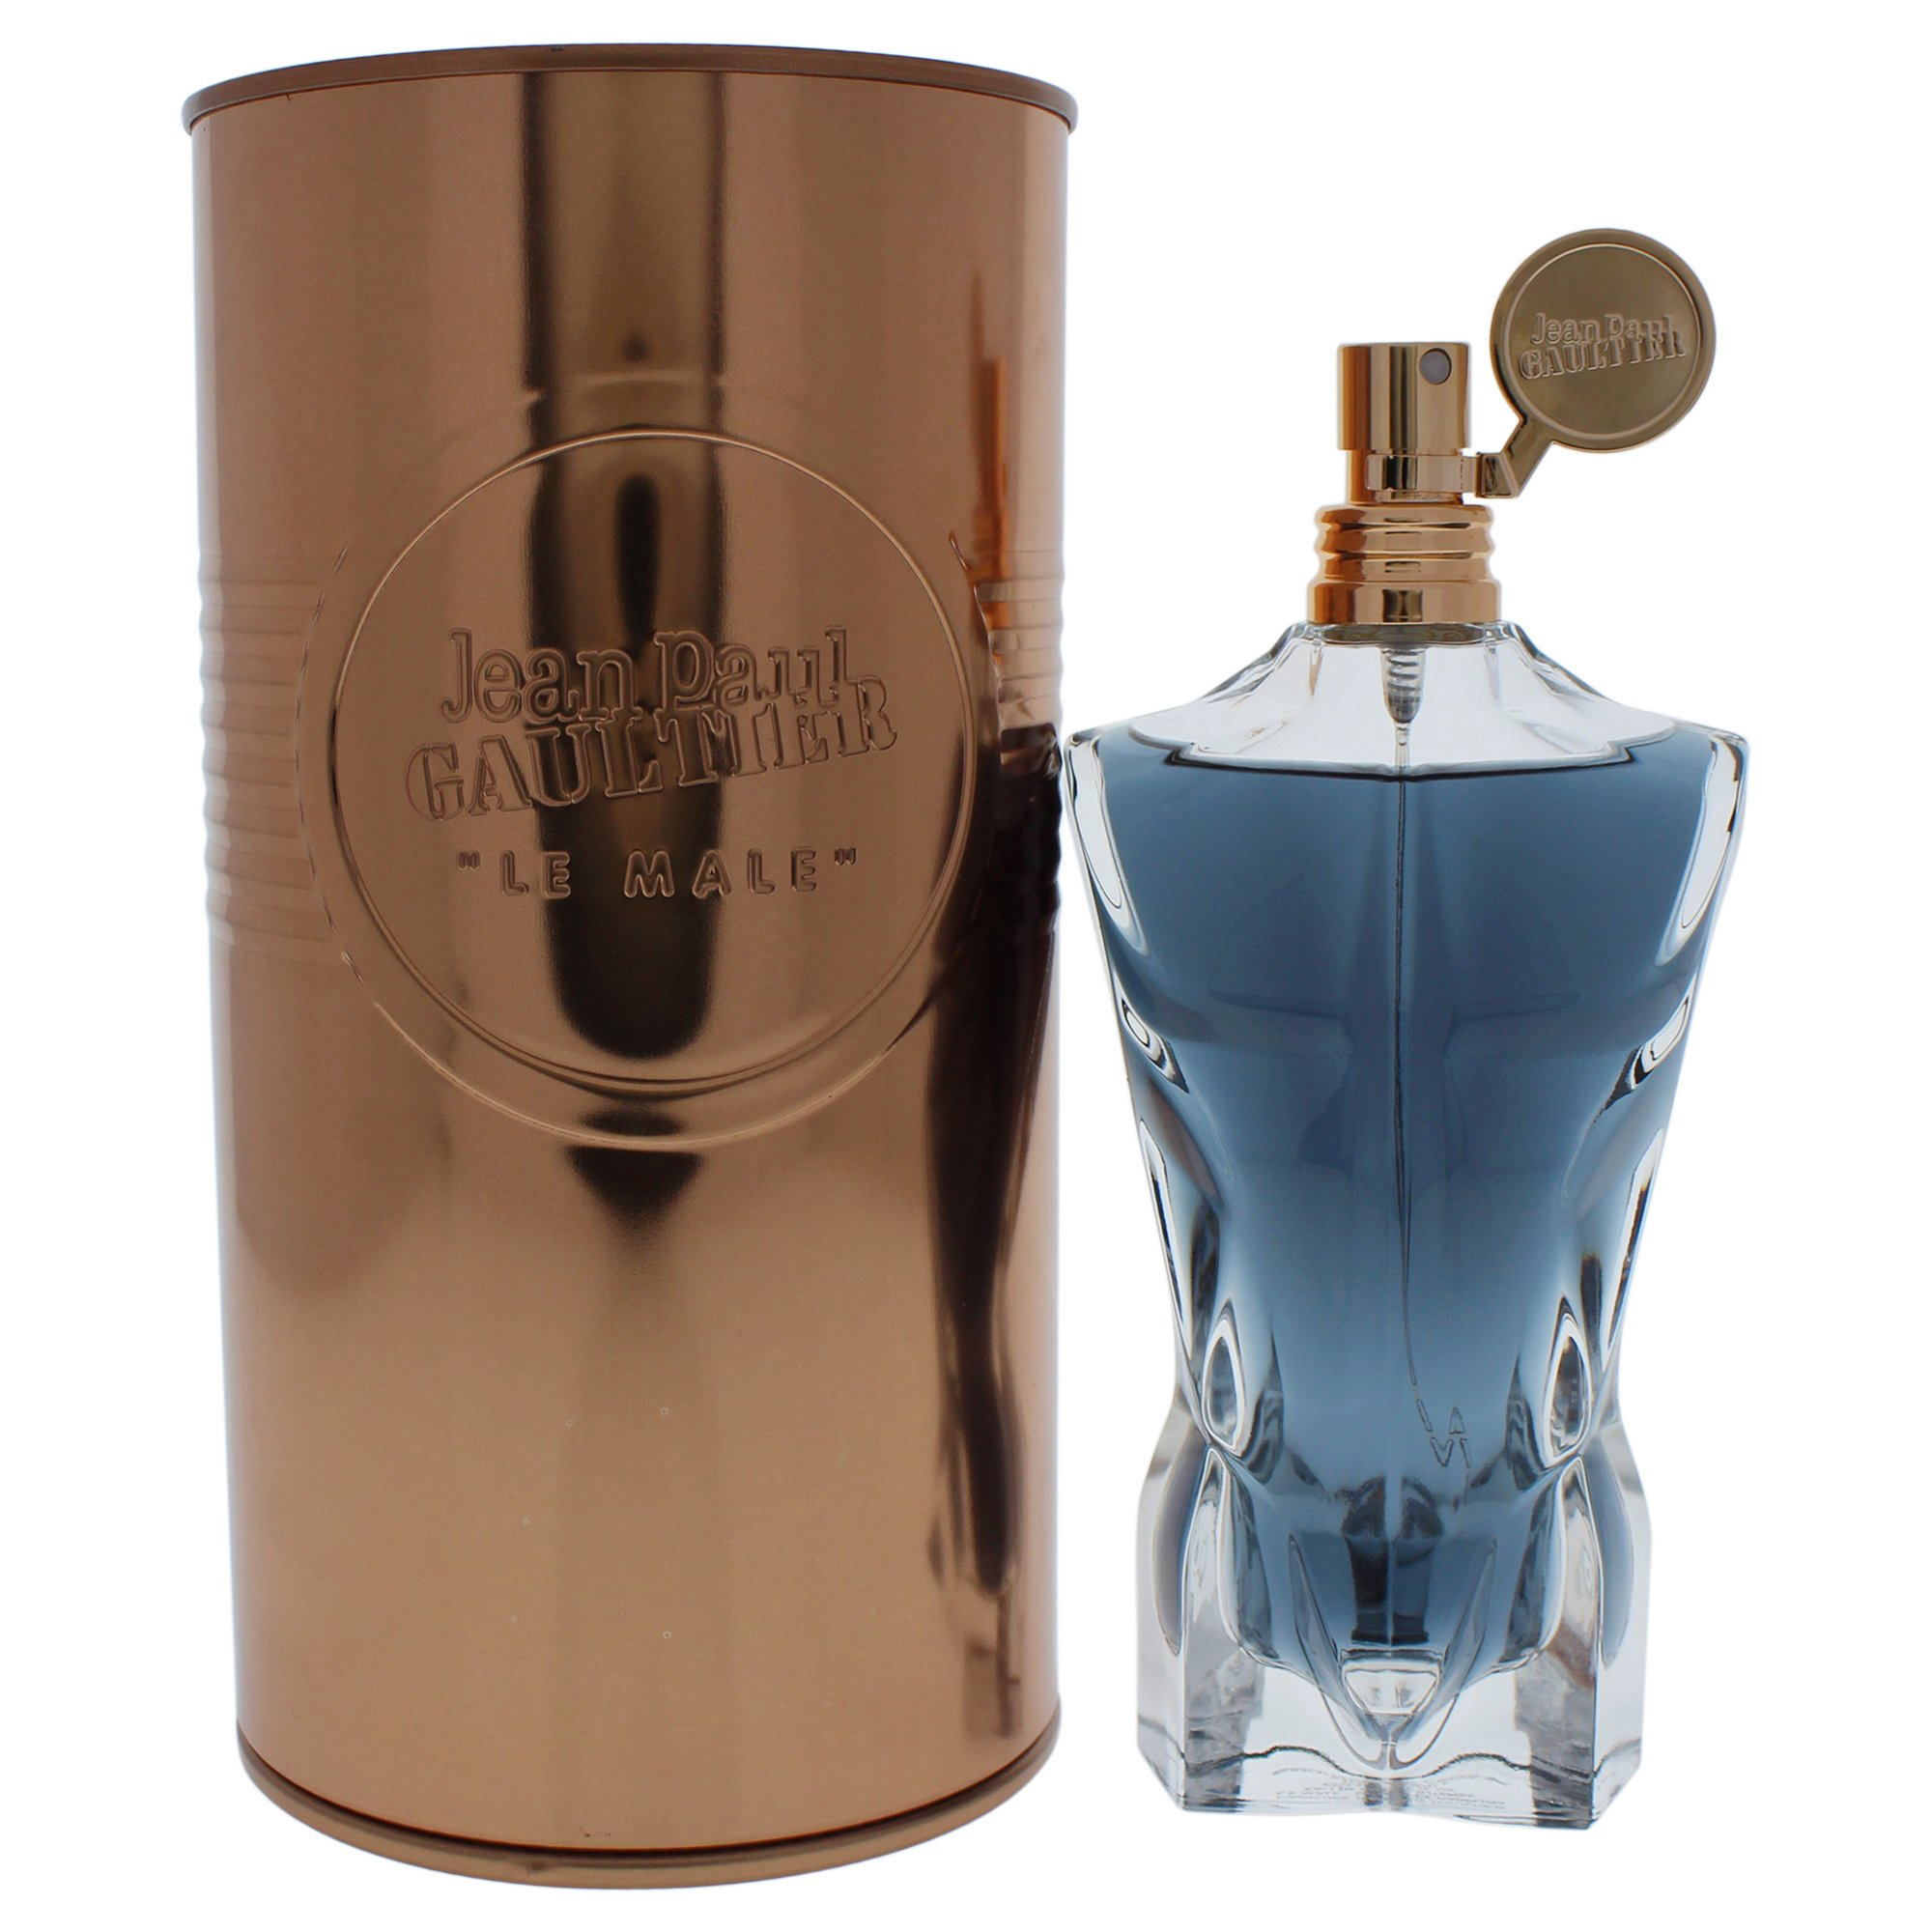 jean paul gaultier le male popeye eau. Black Bedroom Furniture Sets. Home Design Ideas